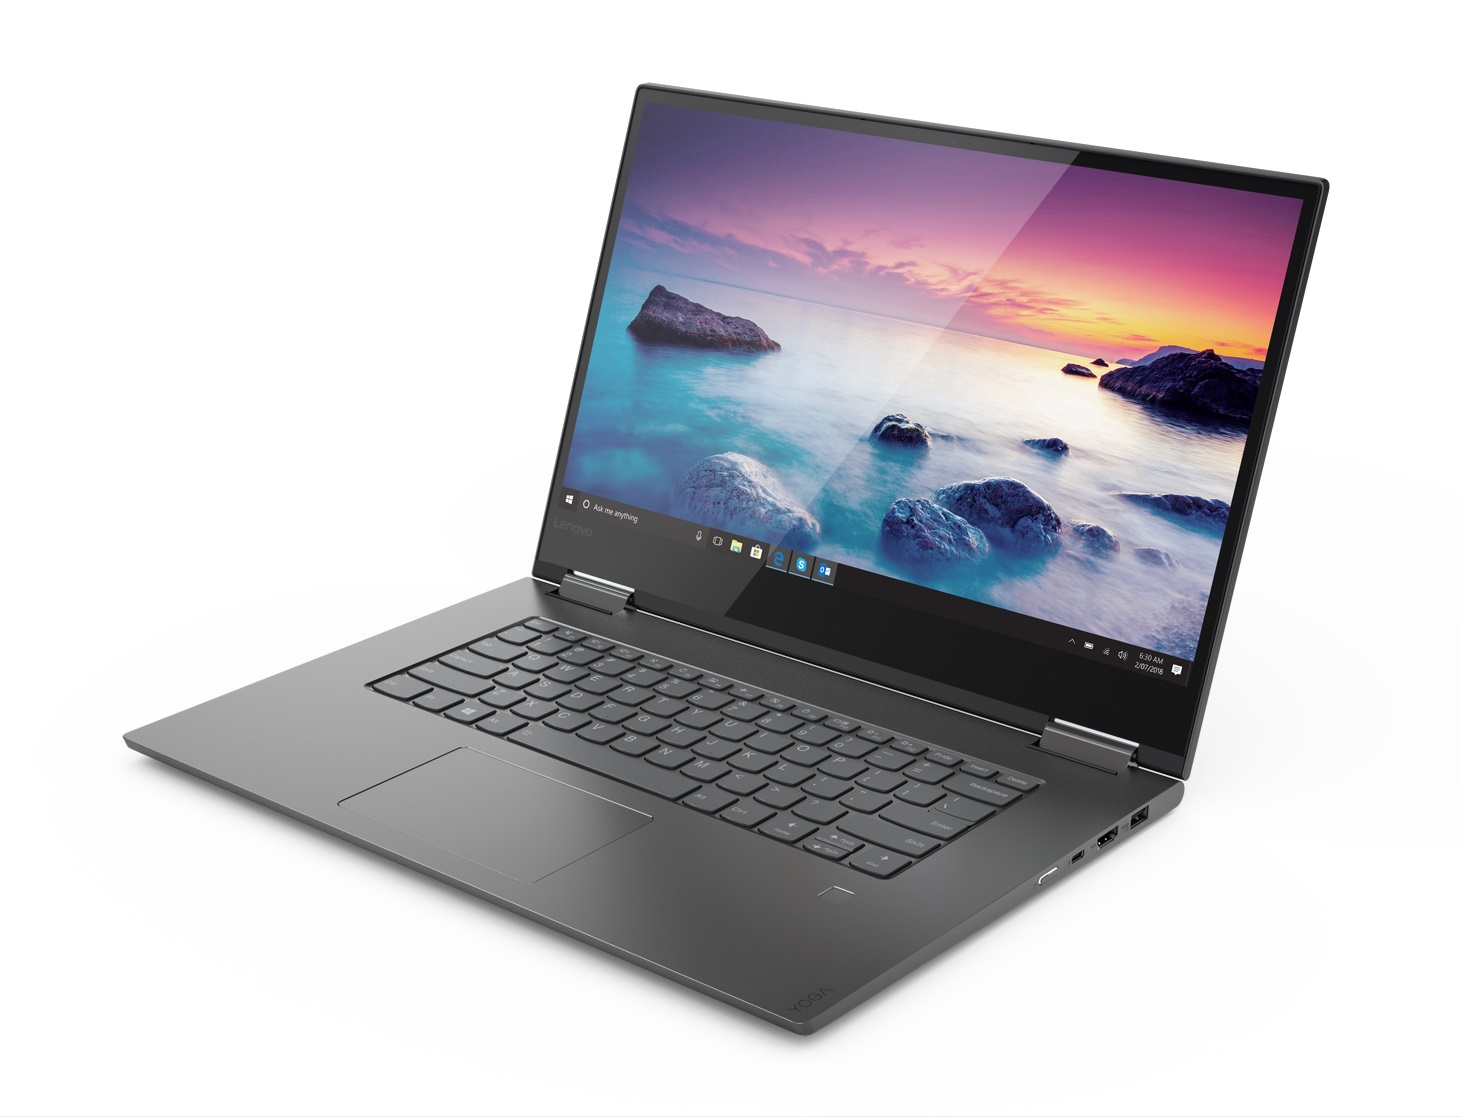 Фото  Ультрабук Lenovo Yoga 730 Iron Grey (81CU004YRA)